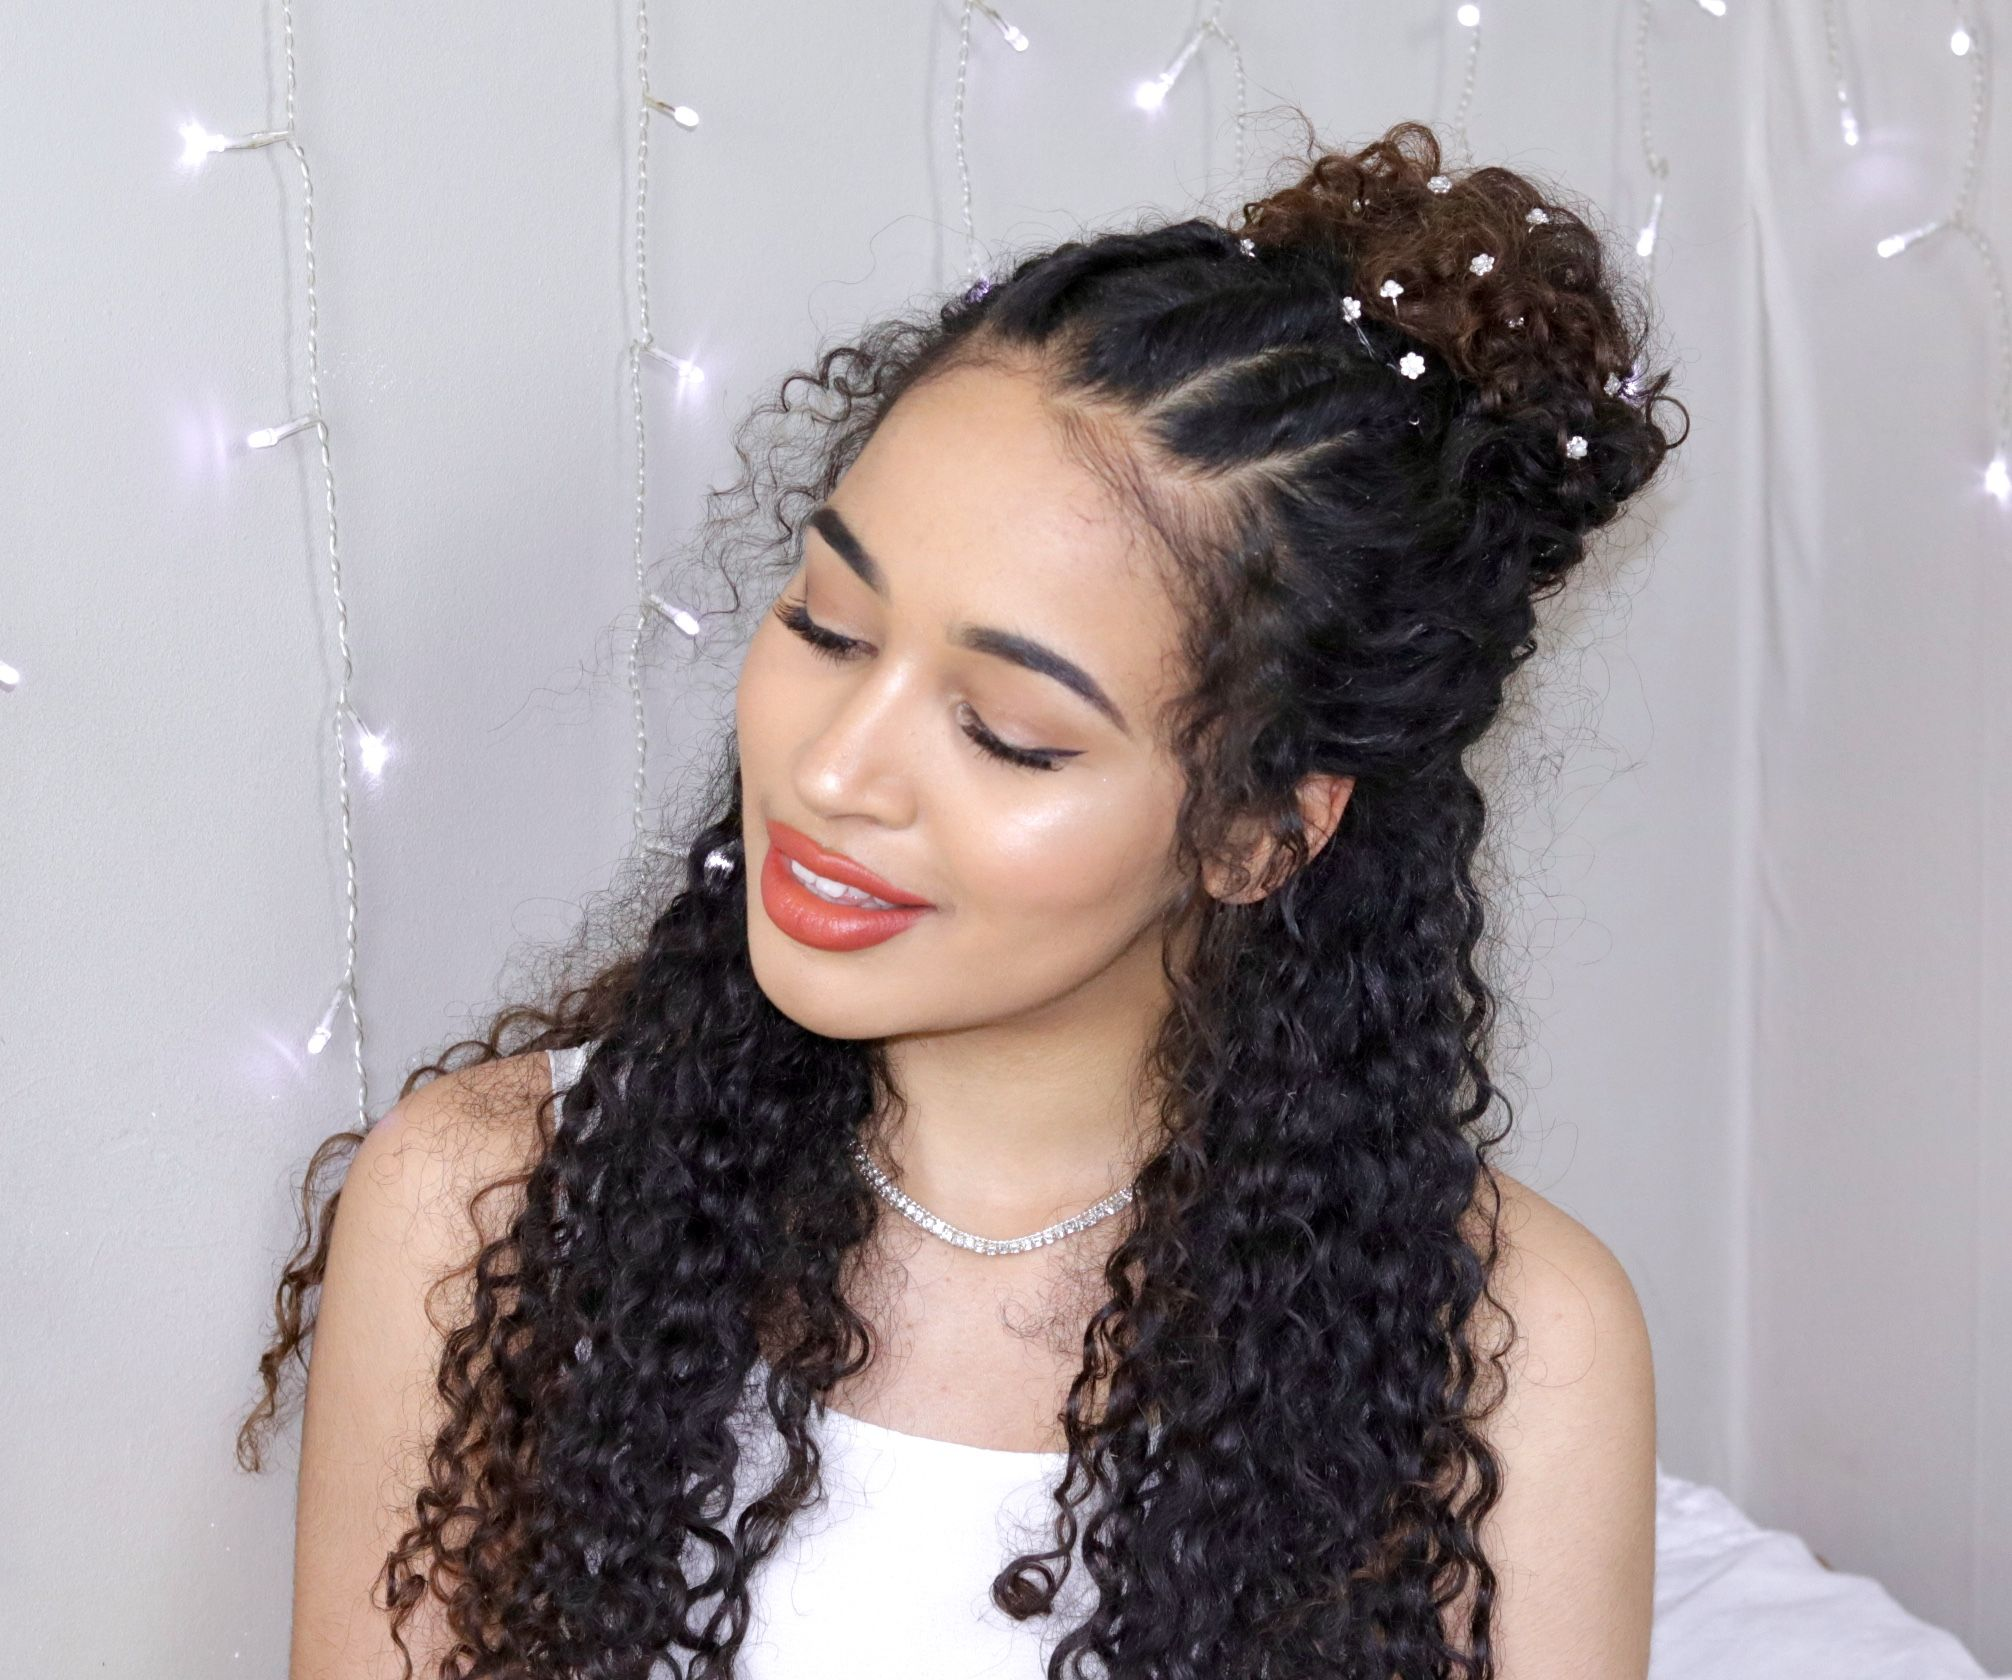 Pin By Giselle Valentin On Hairstyles In 2019 Curly Hair